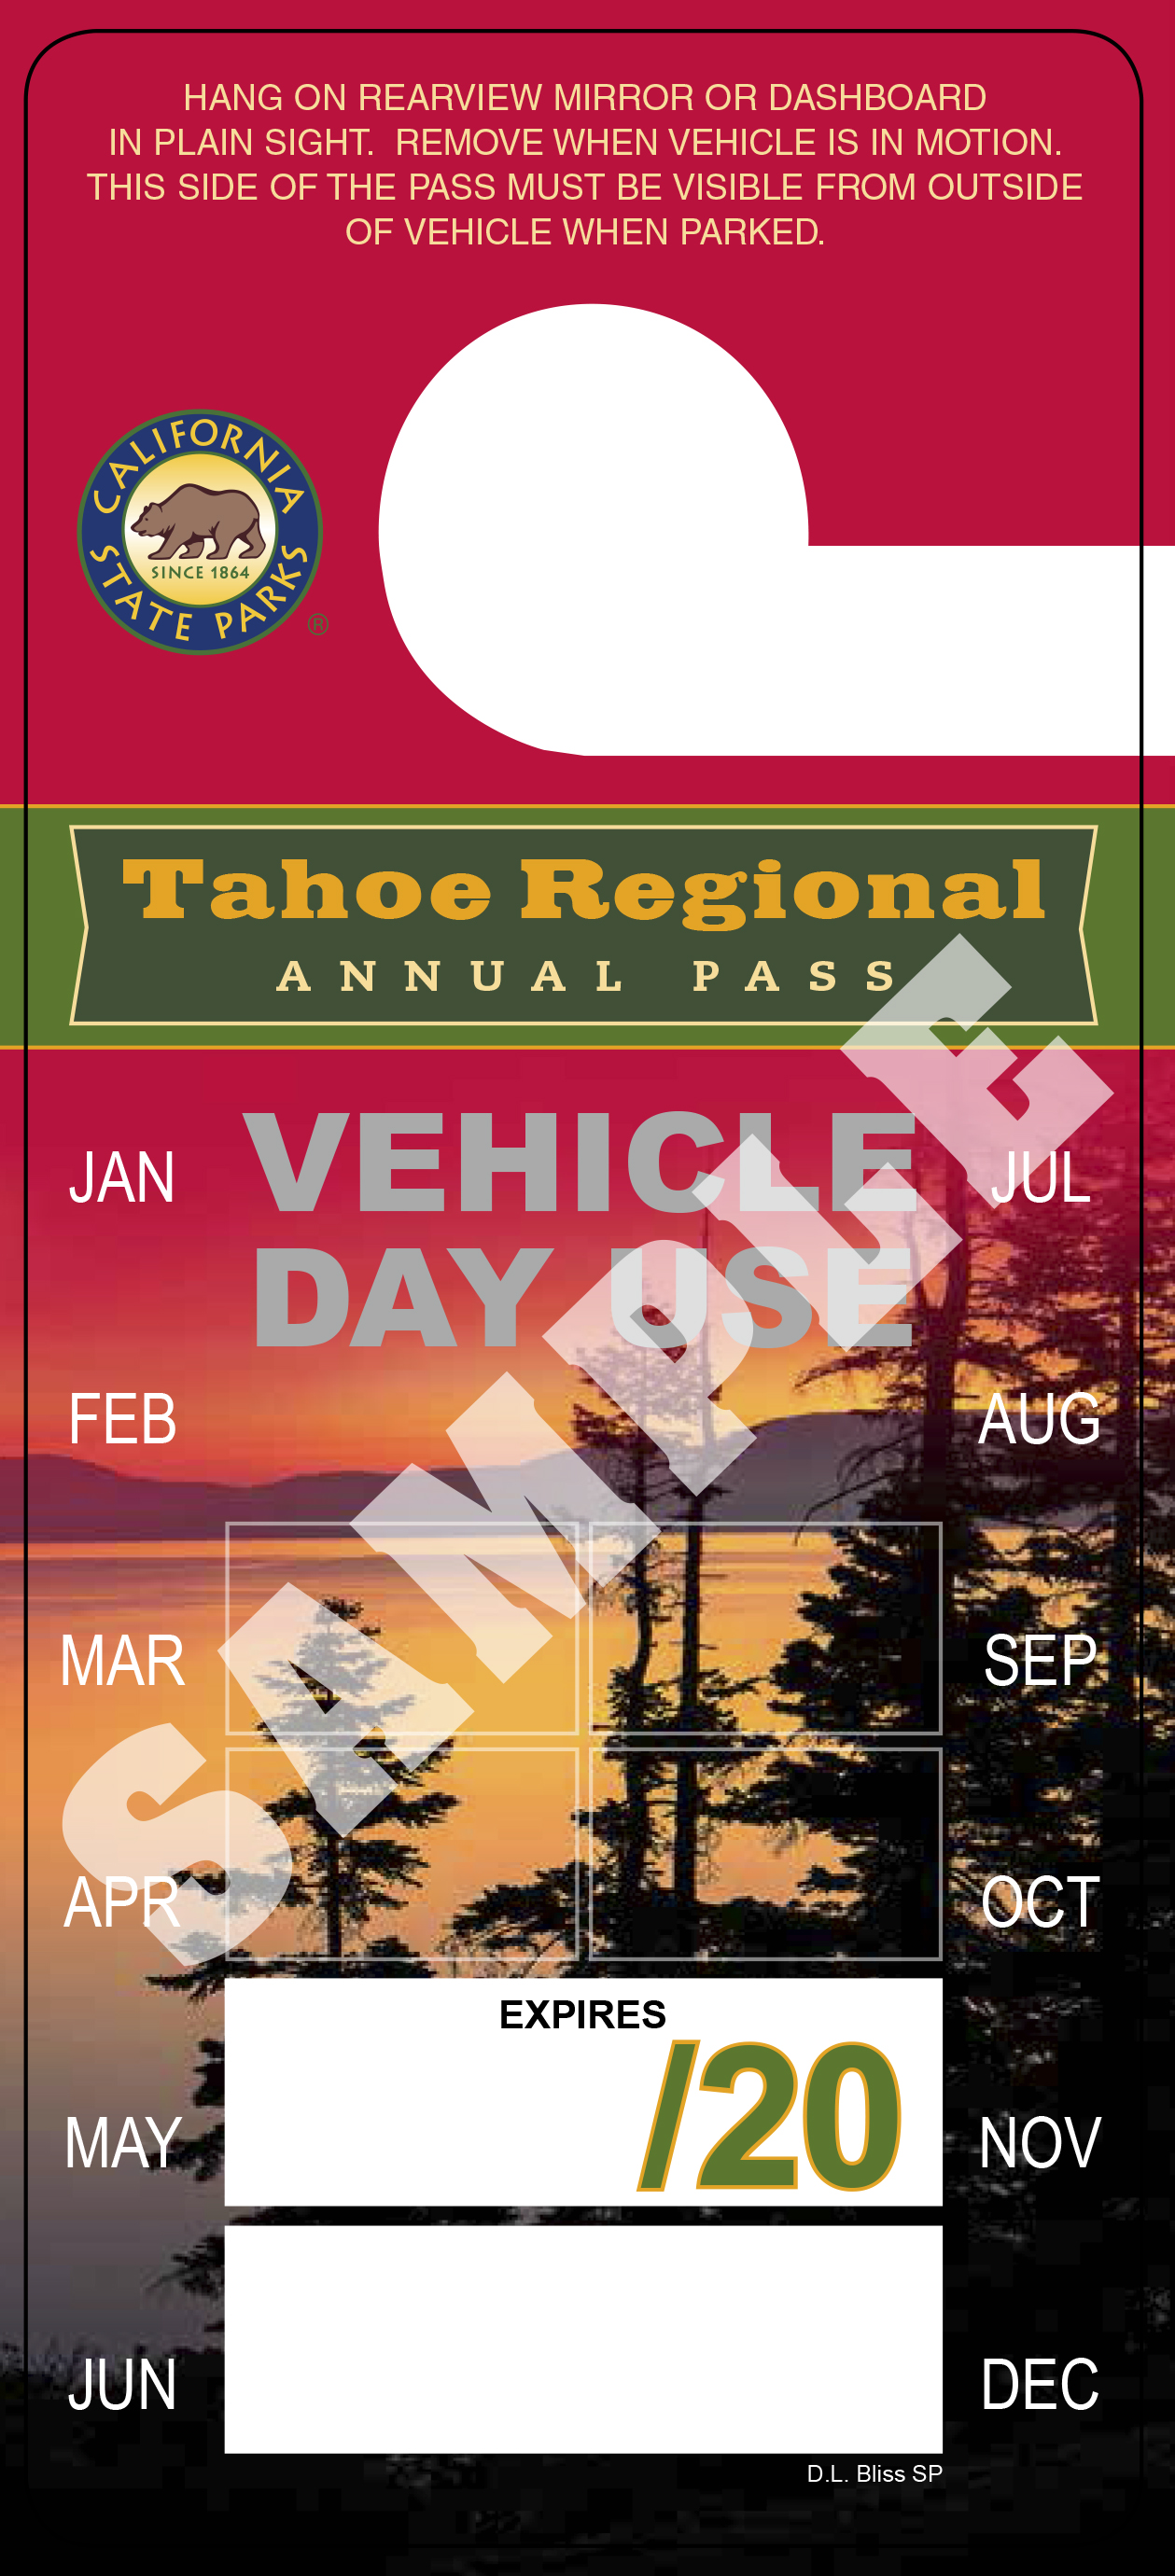 Annual Tahoe Regional Pass image